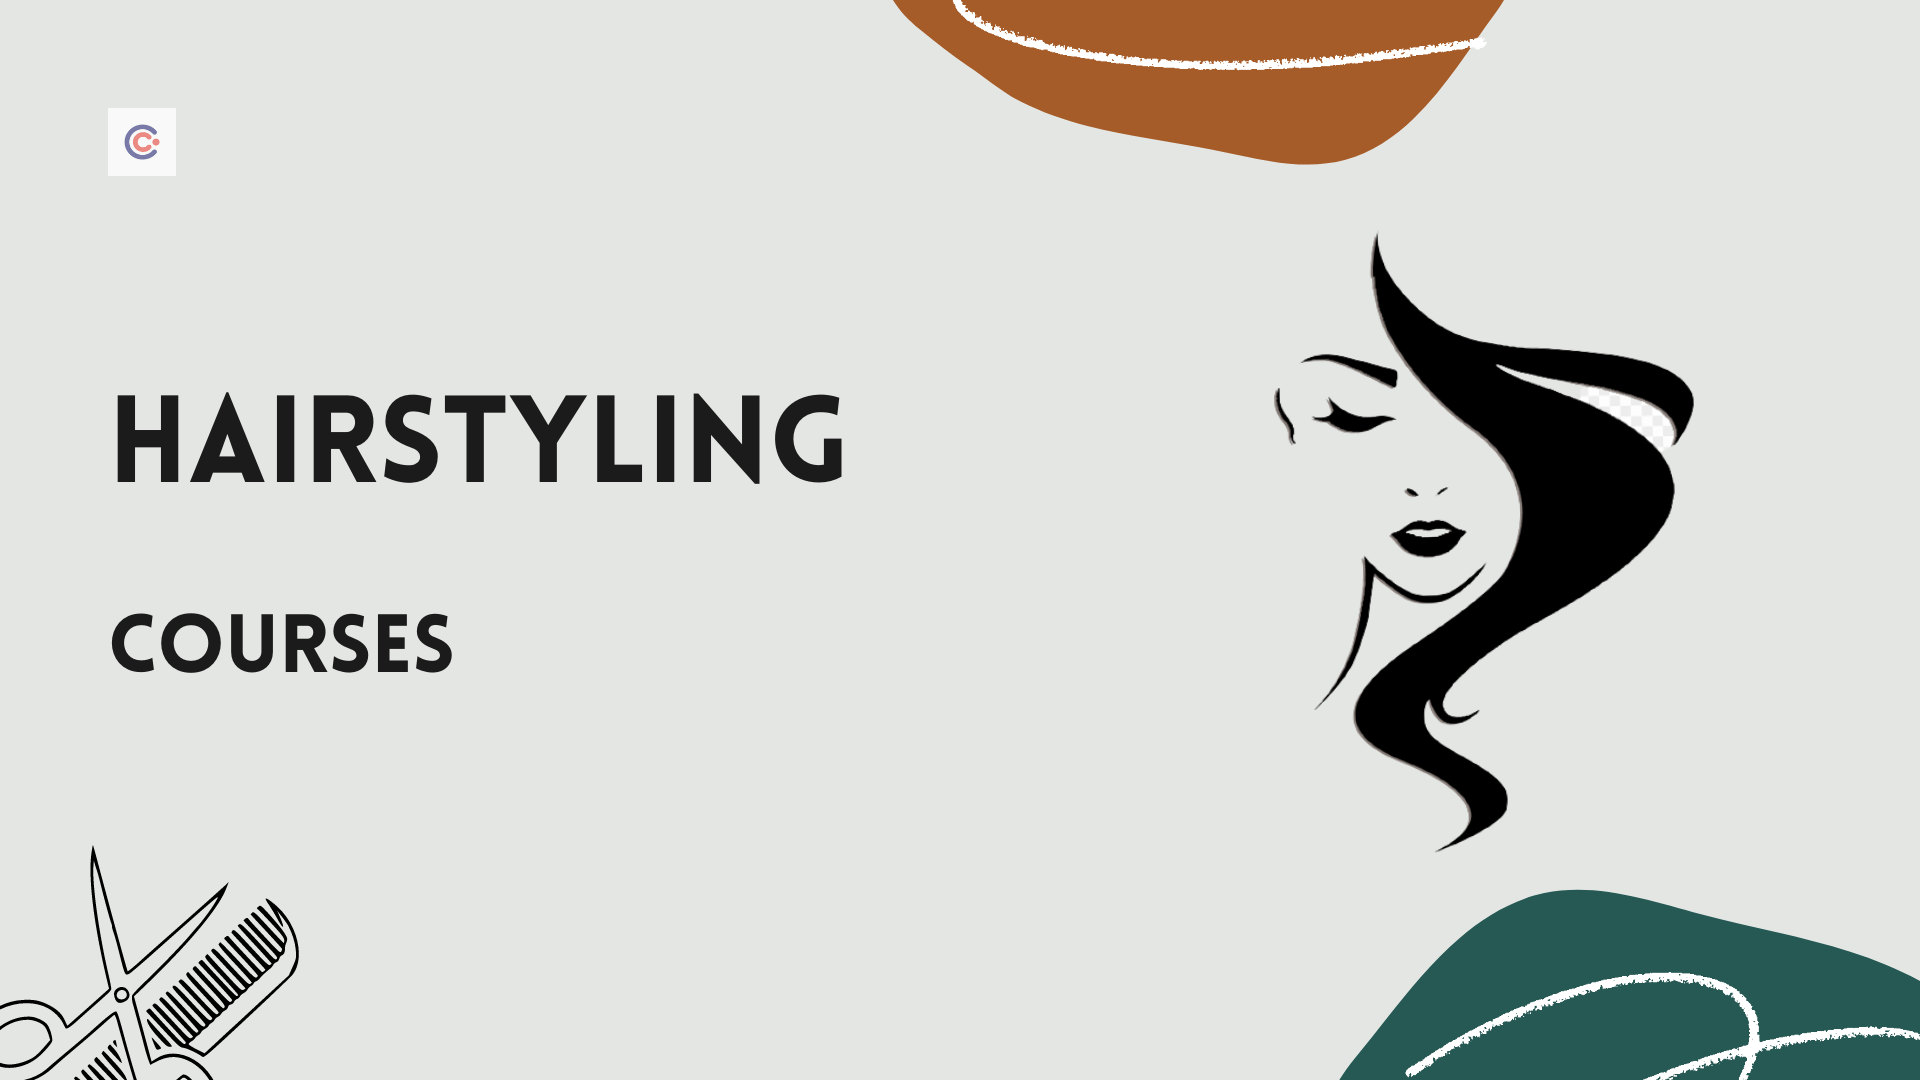 11 Best Hairstyle Classes - Learn Hairstyling Online